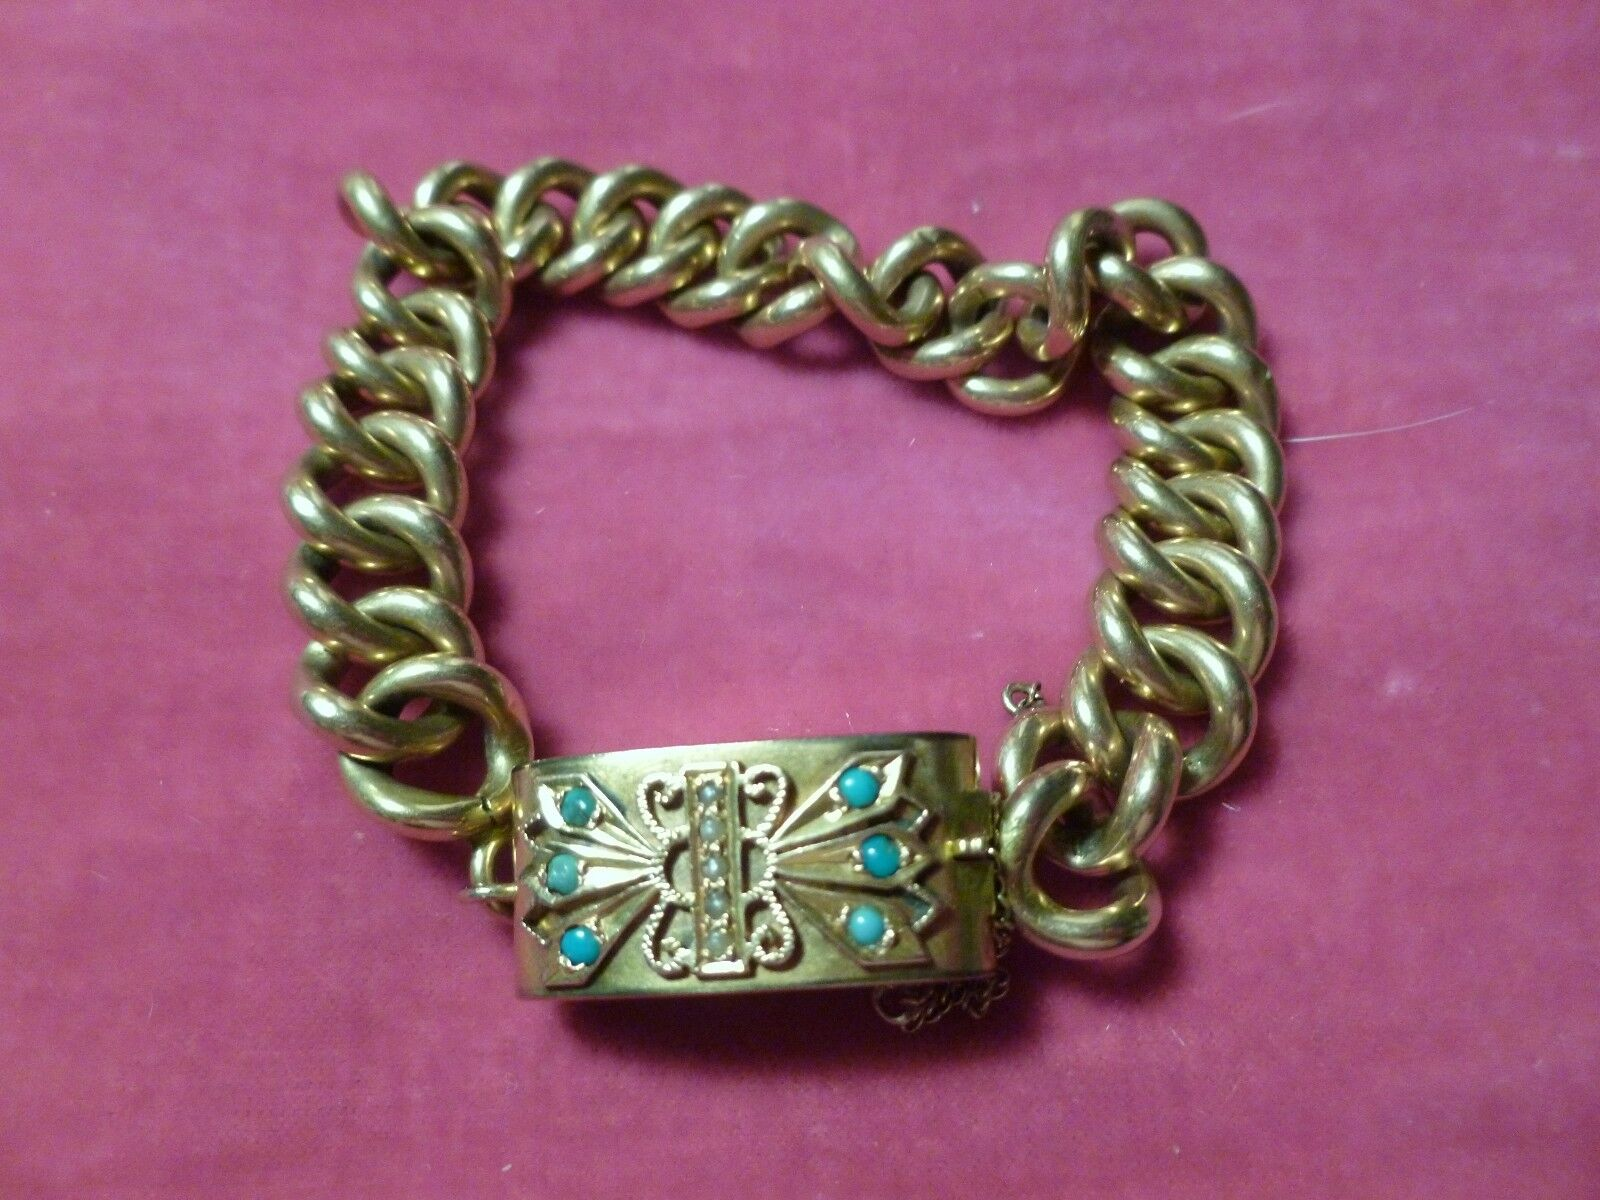 10K 14K gold VICTORIAN BRACELET W PEARL & TURQUOISE CLASP  HALLMARKED 17.8 GRAMS